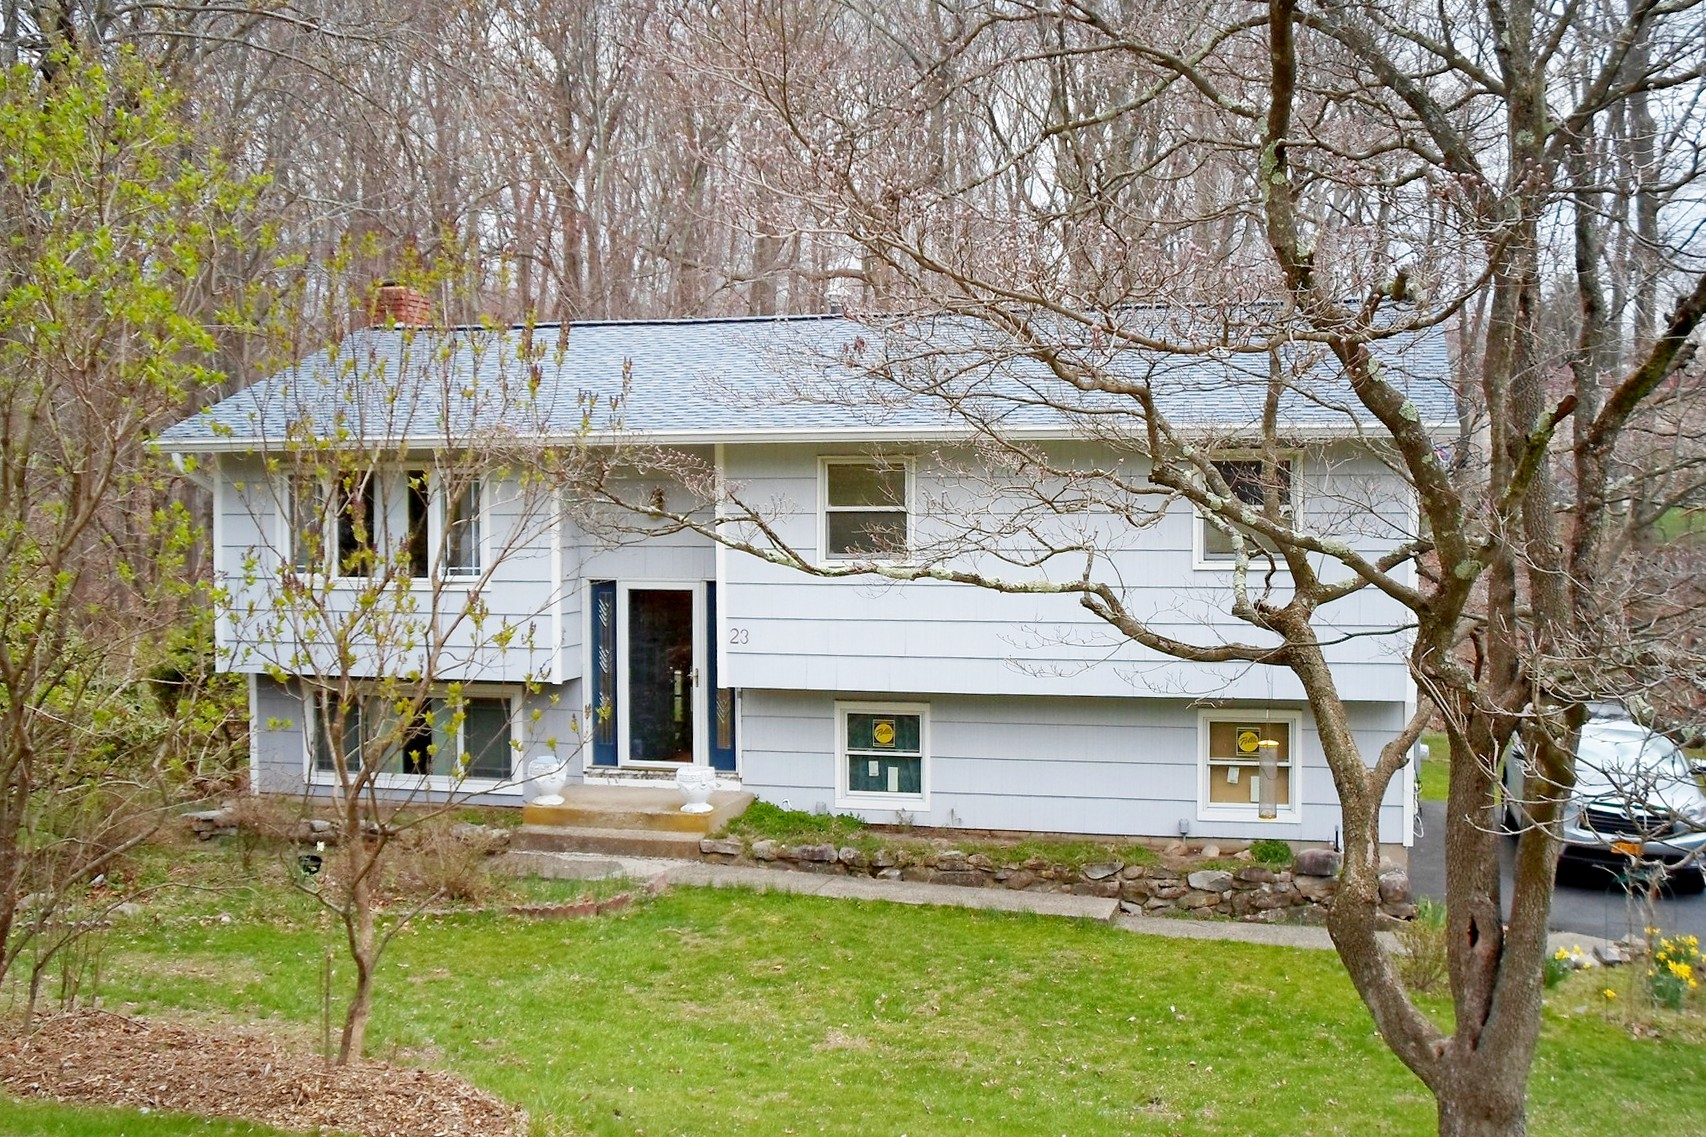 Single Family Home for Sale at Great Location 23 Fawn Hill Drive Airmont, New York, 10901 United States